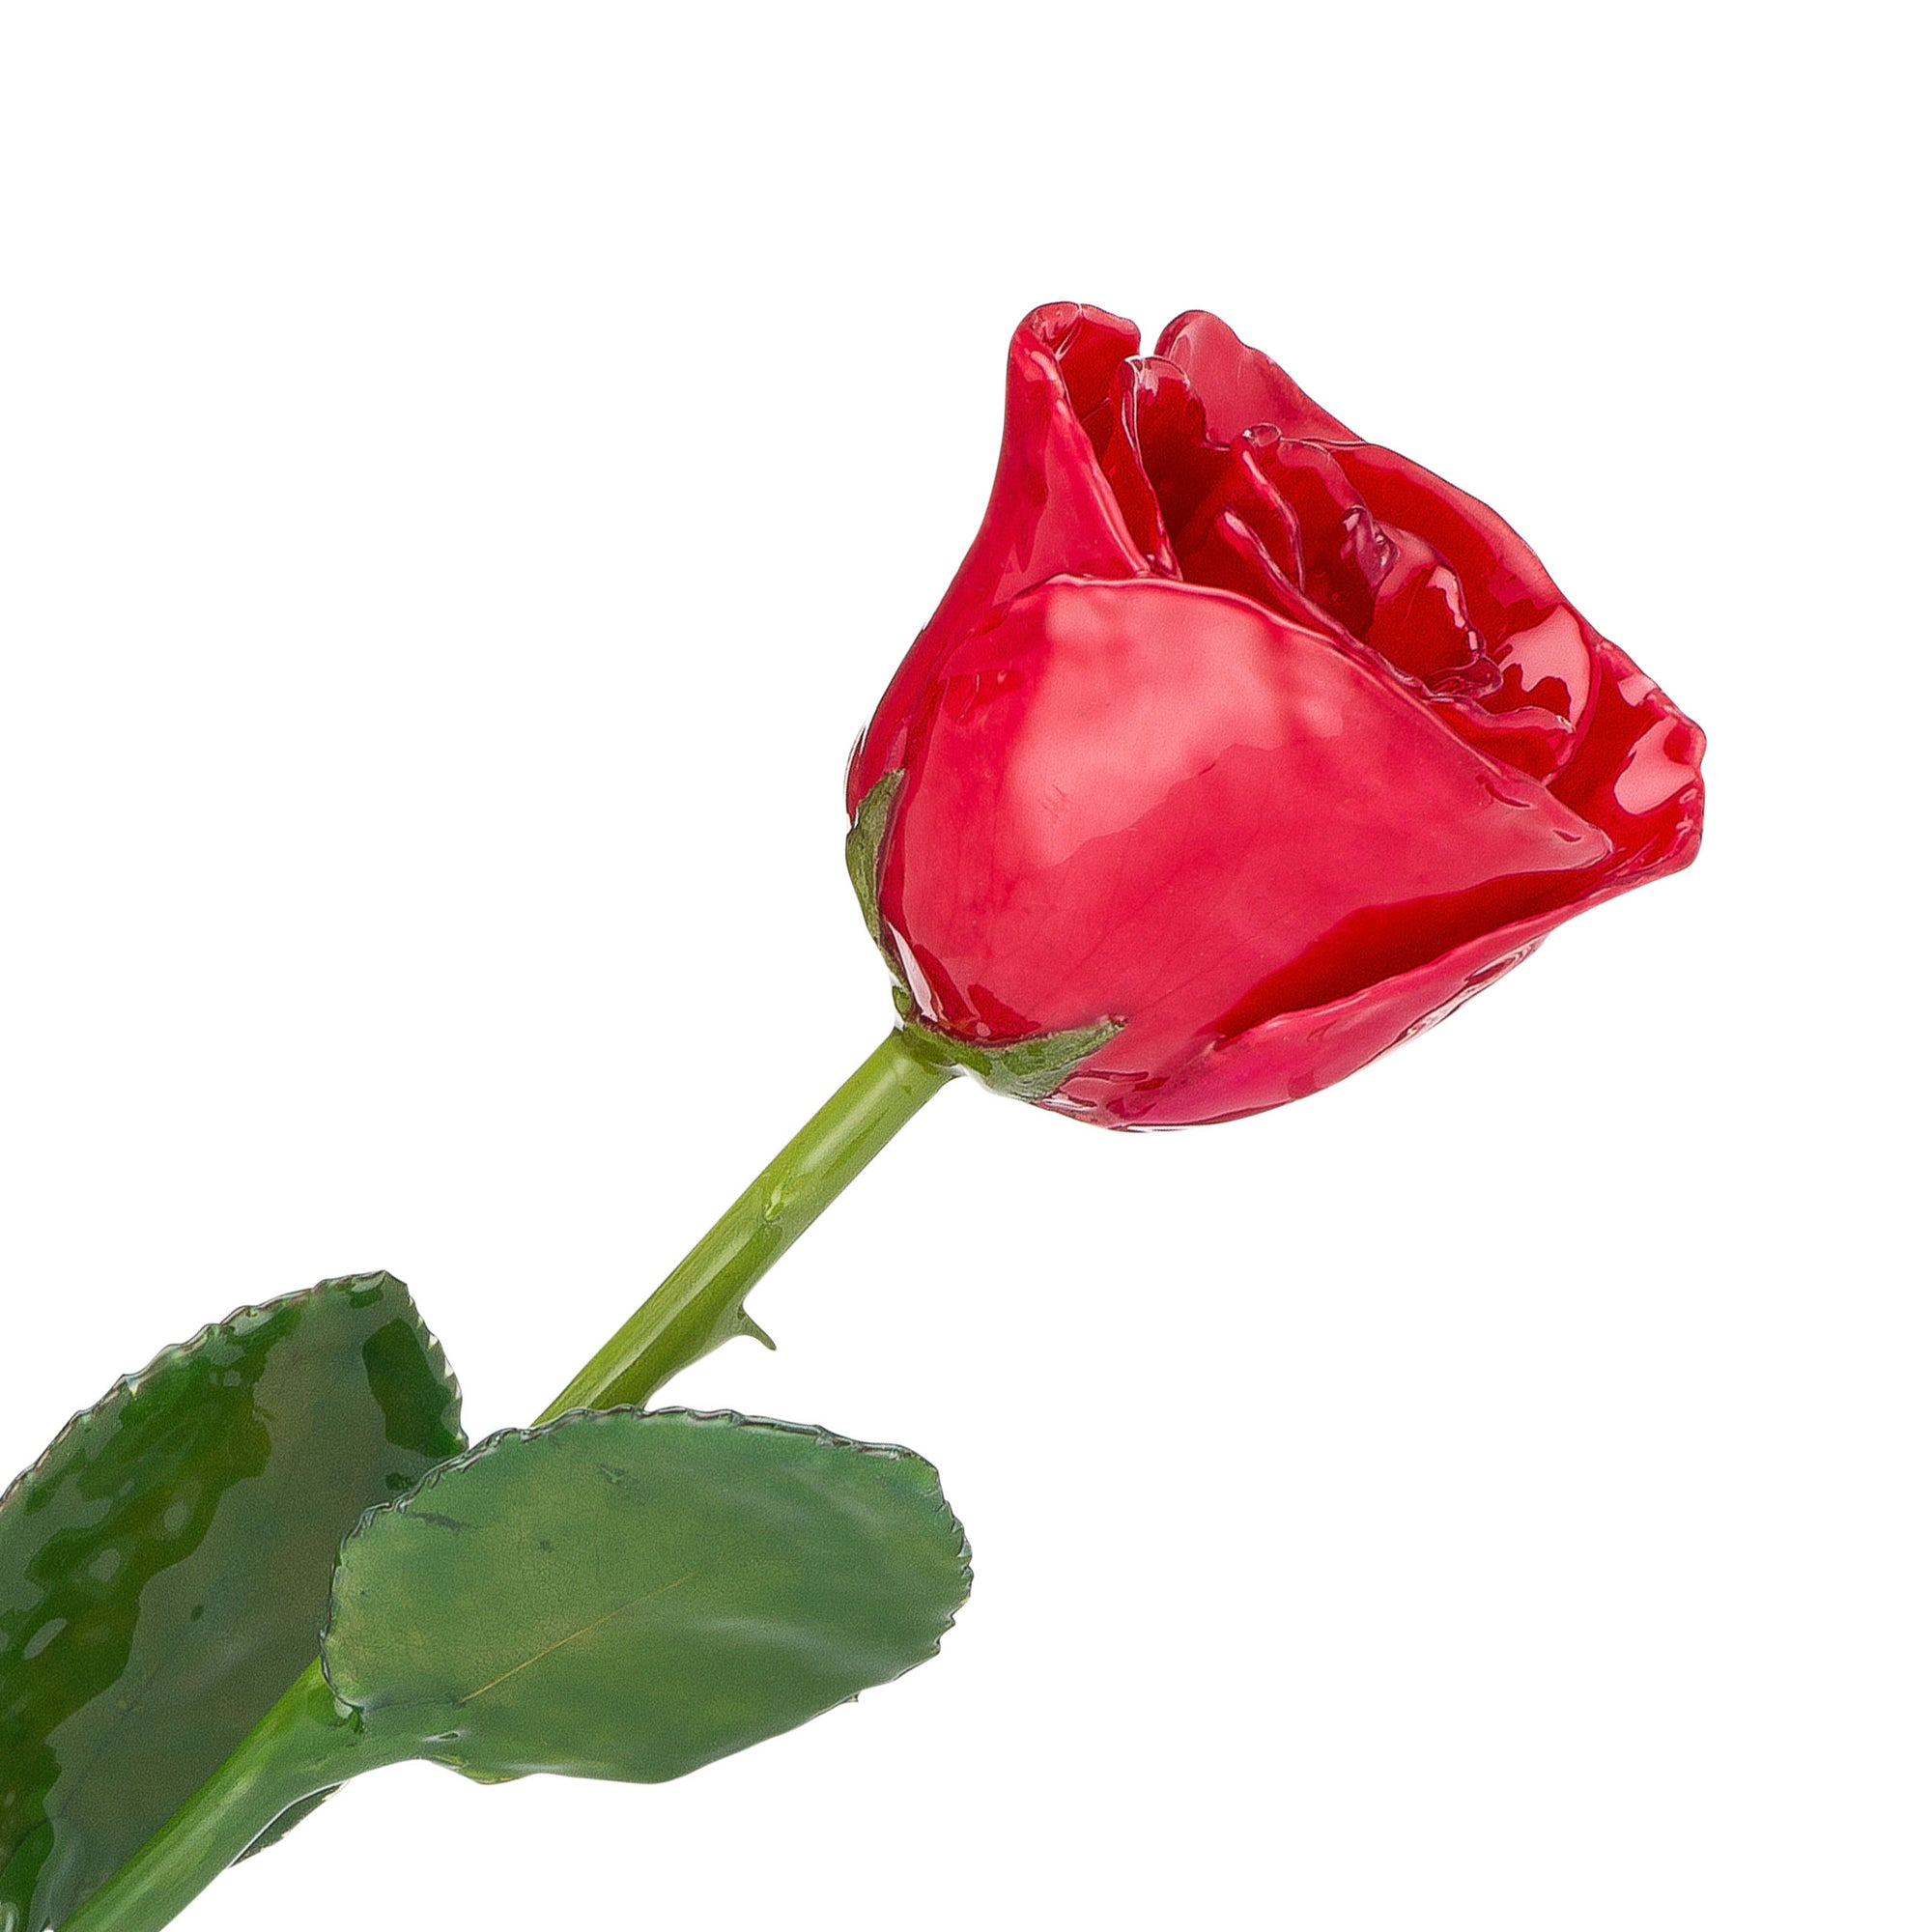 Natural (Green Stem) Forever Rose with Red Colored Petals. View of Stem, Leaves, and Rose Petals. This a Forever Rose without any gold or other precious metals on it.